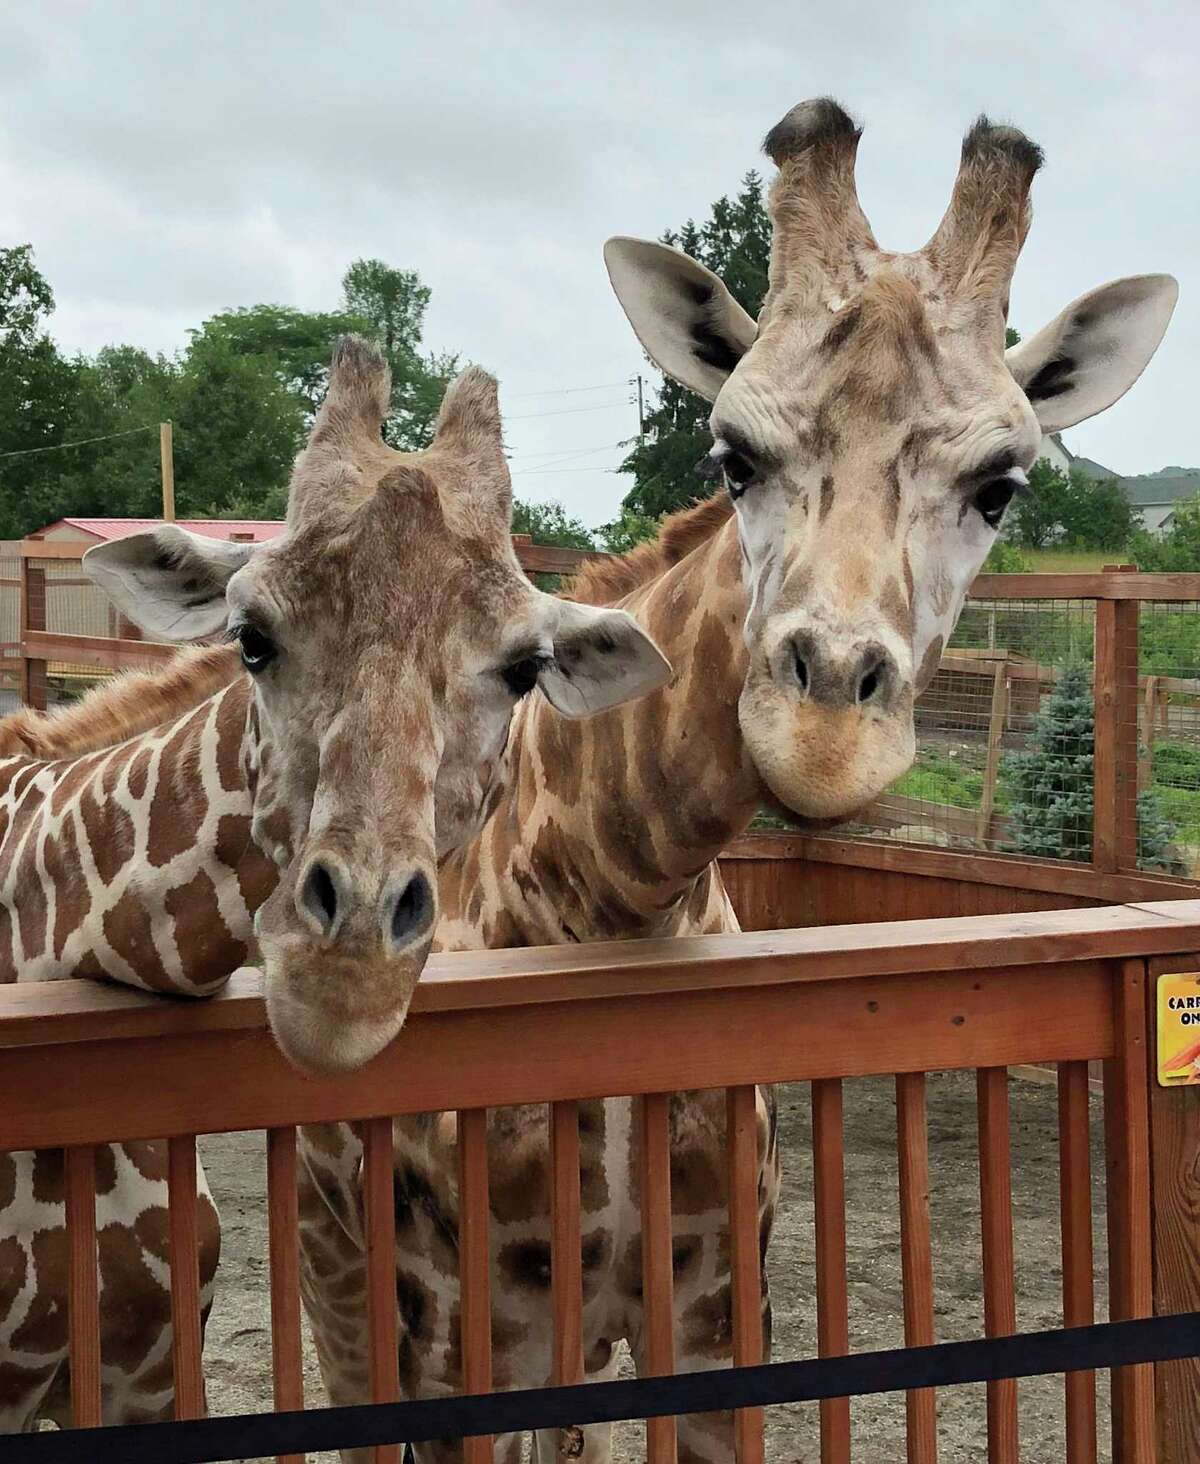 April the giraffe's most recent calf, Azizi, died unexpectedly on Tuesday due to a condition discovered following treatment for parasites.